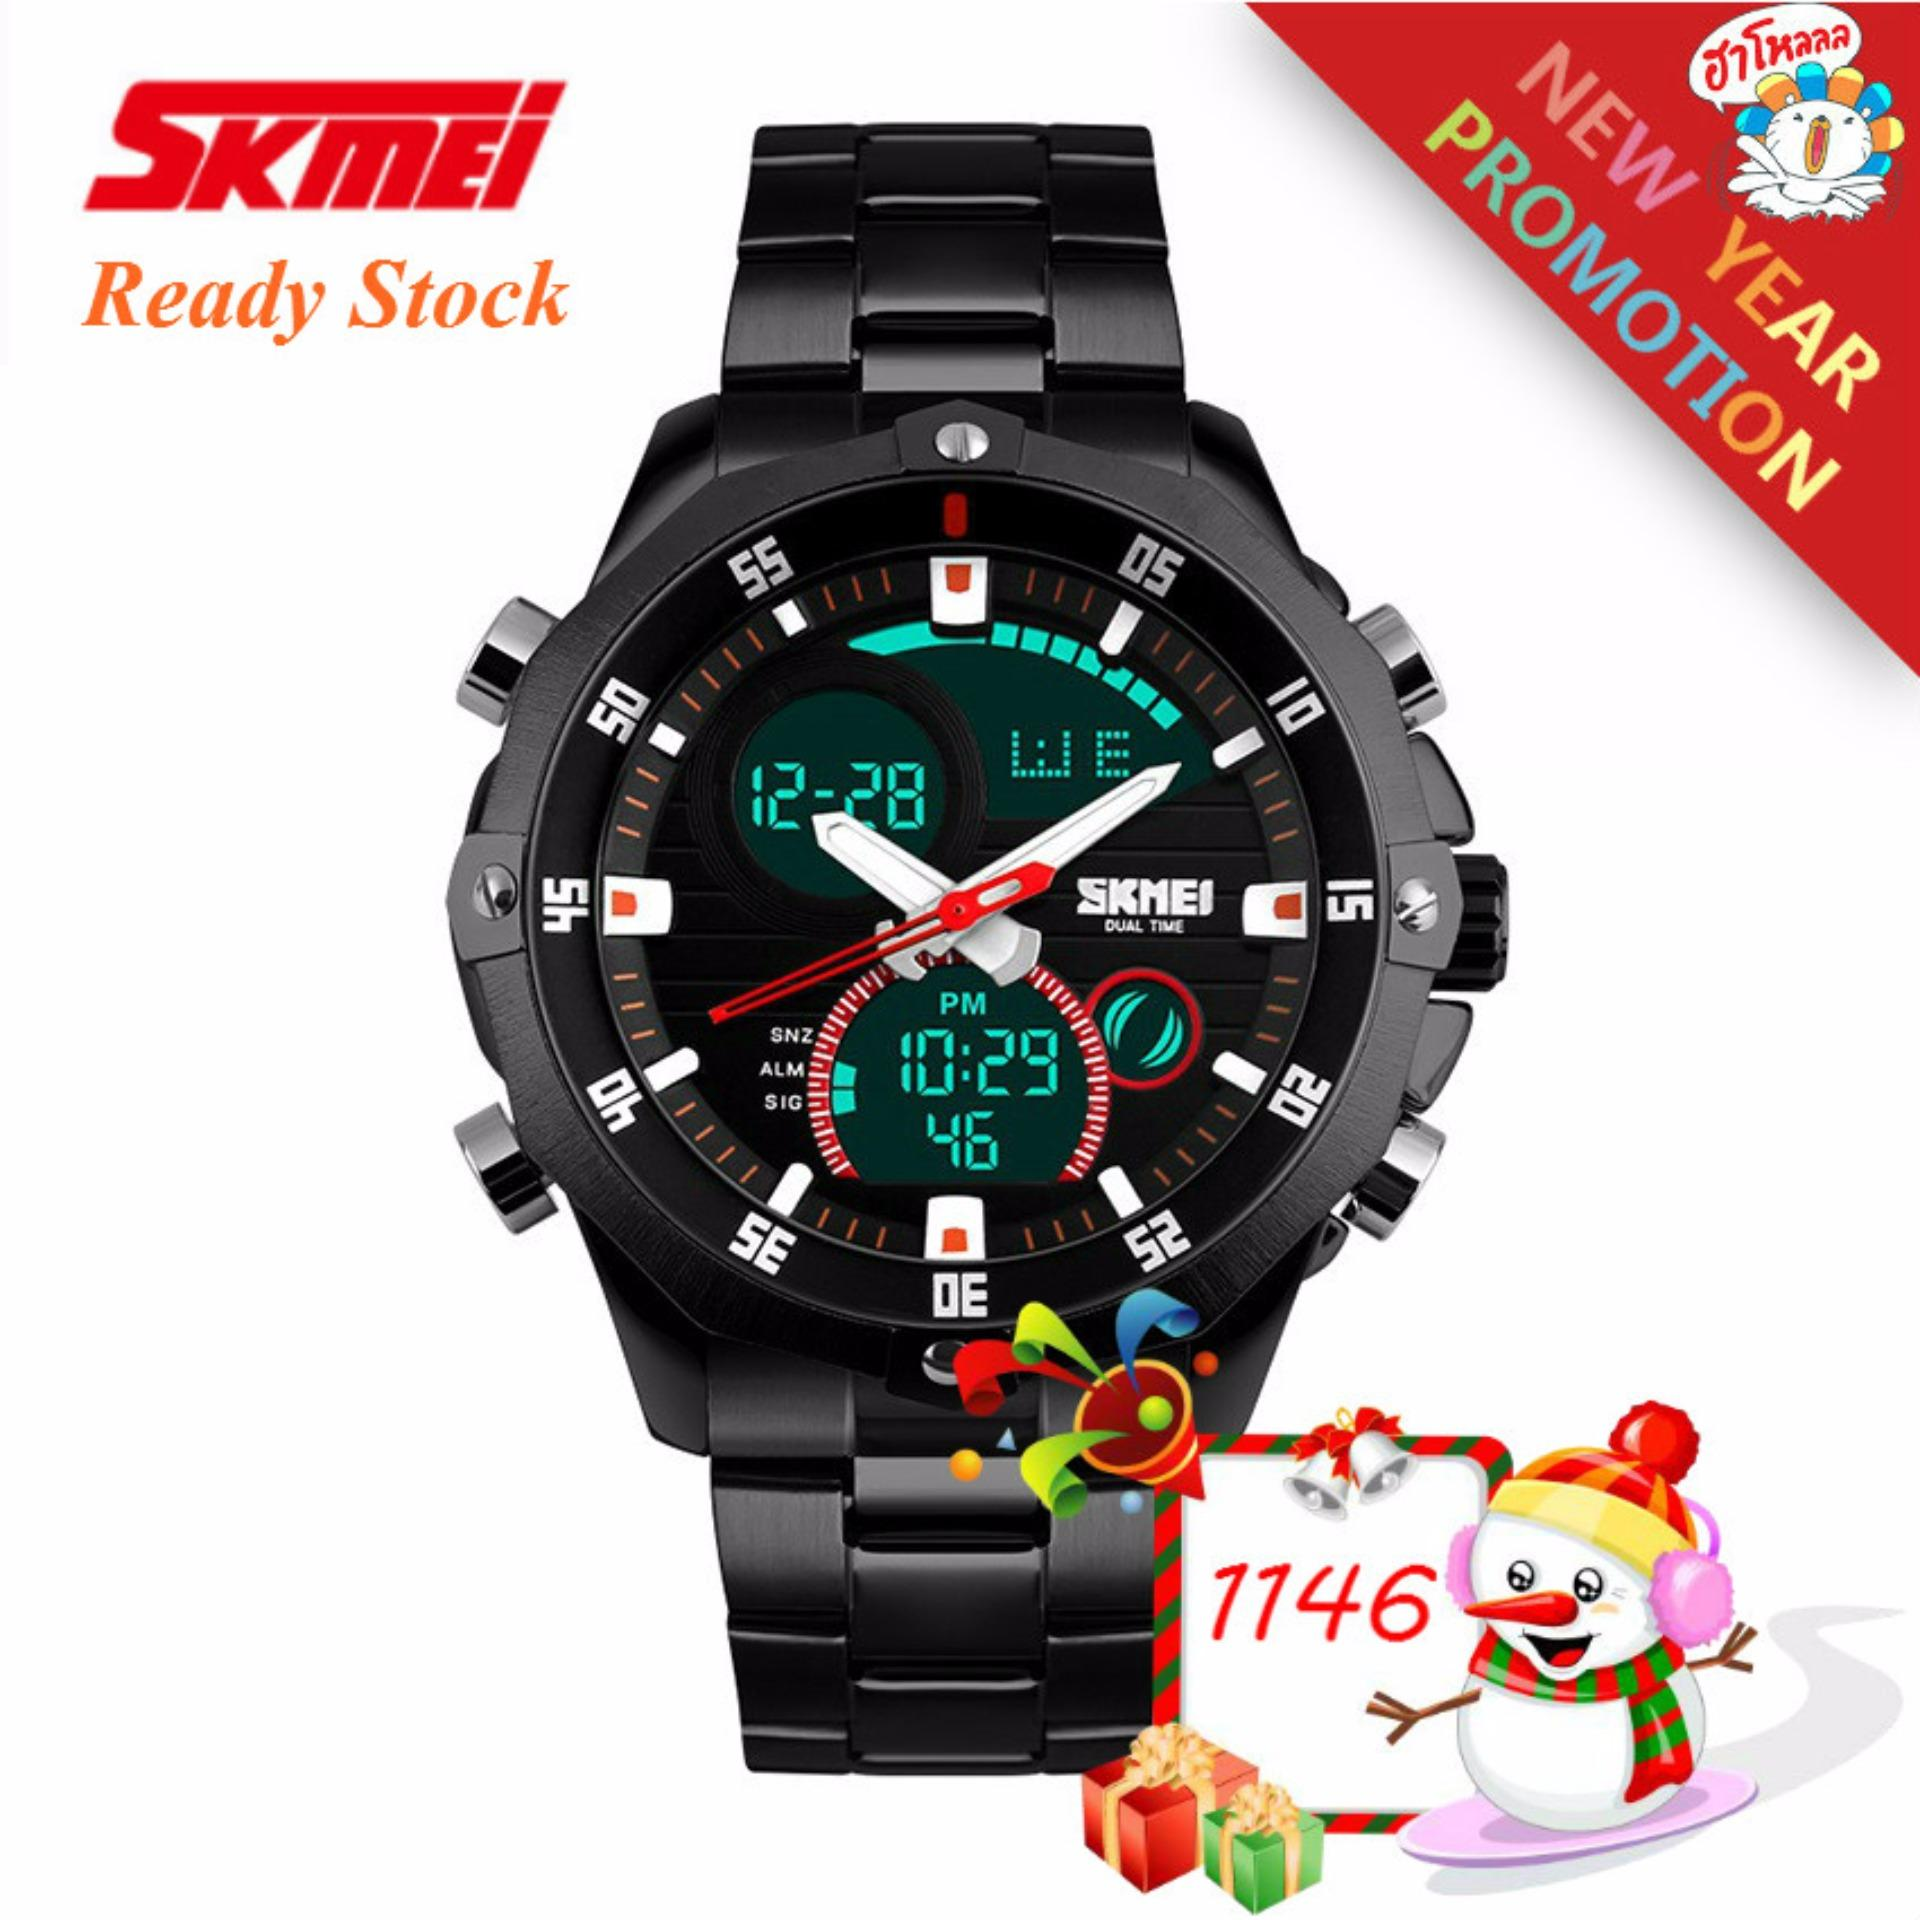 2018 High Quality SKMEI New 1146 s calendar strip watch Men (black) Malaysia